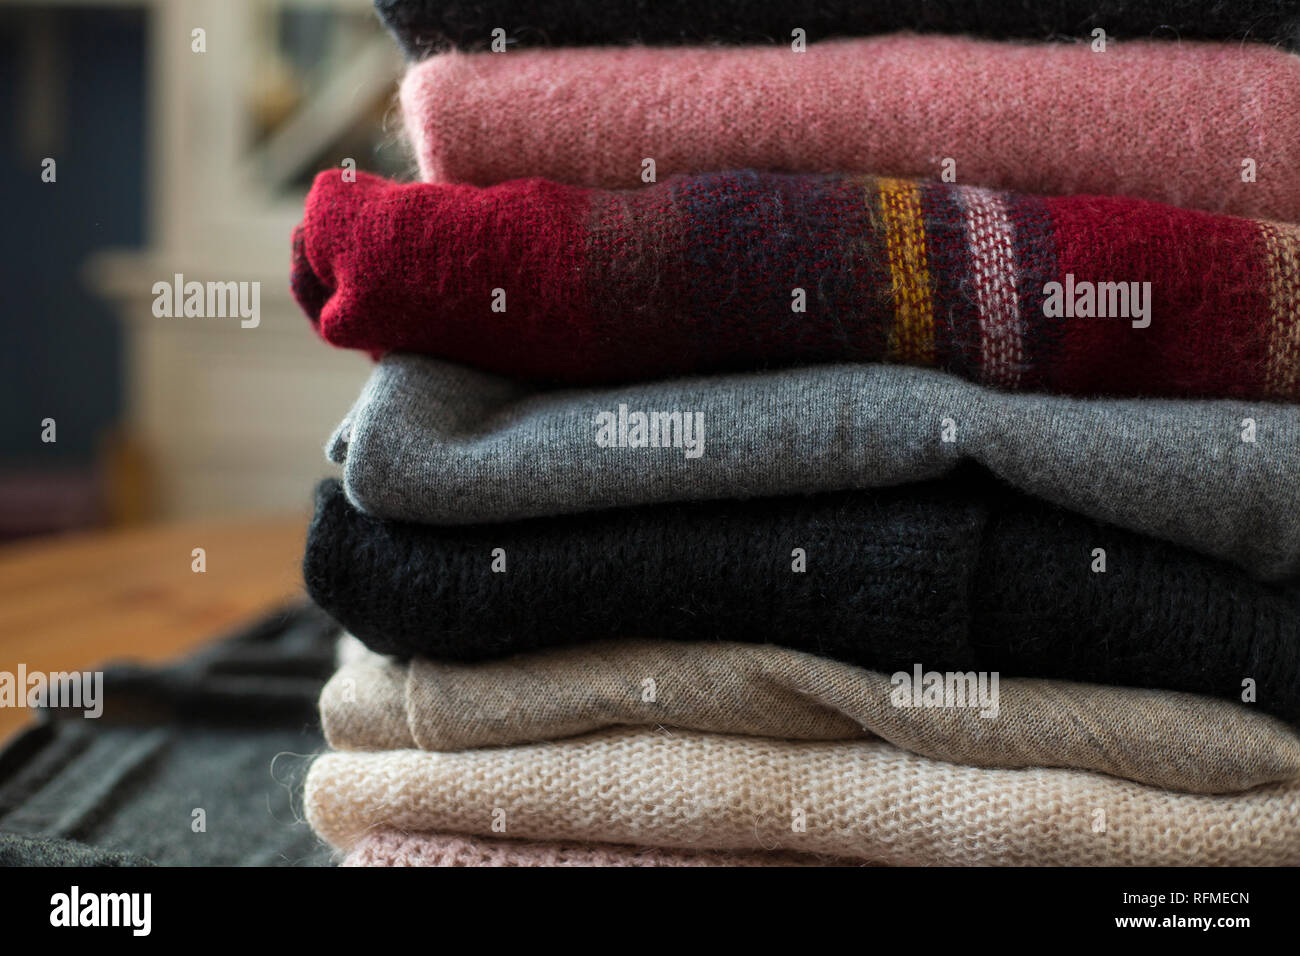 Pile of pink and grey sweaters close-up background. - Stock Image